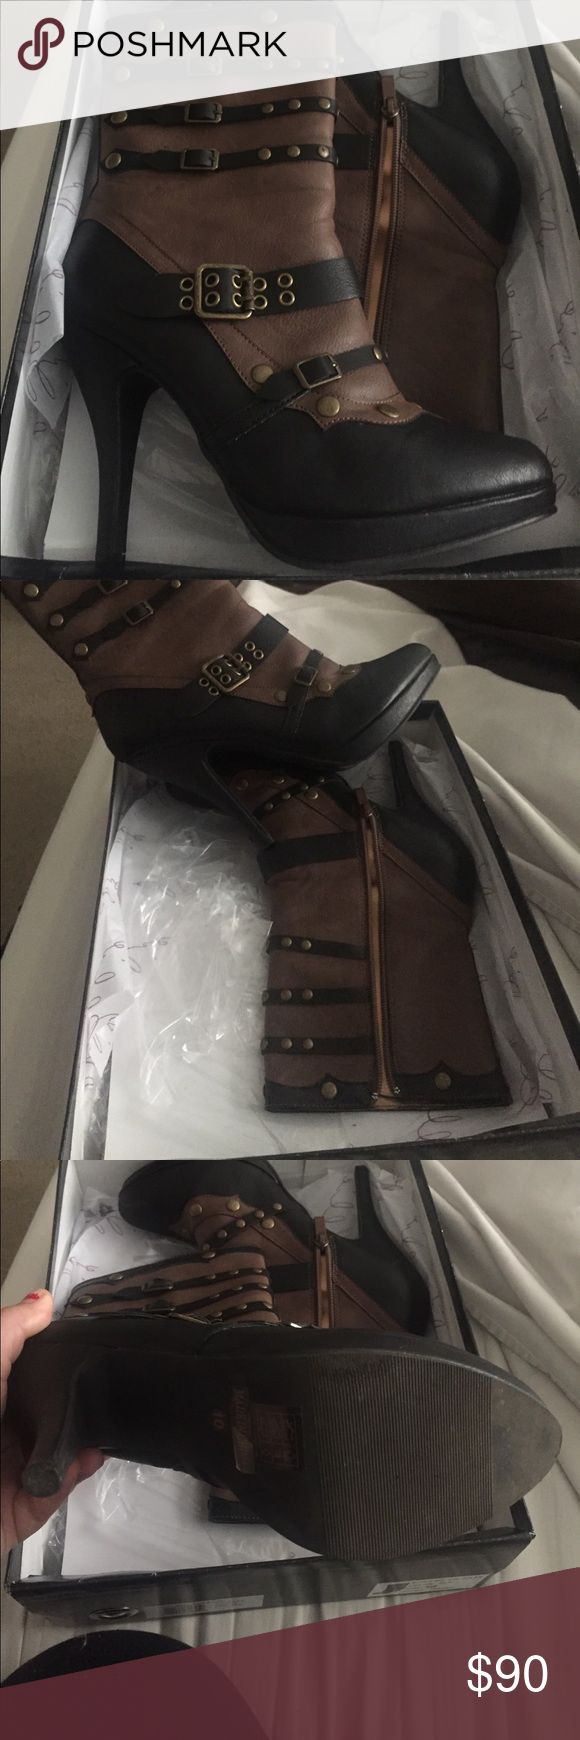 "4"" Steam Punk Boots size 10 Size 10, worn once for a charity function, still in box. Colors are black, & camel brown with brass hardware. Beautiful boots! Feel free to make me an offer, but please, no lowball offers- they will be declined. Thanks! Happy poshing!                🔥ONLY UNTIL SEPTEMBER 4th $70🔥 Shoes Heeled Boots"